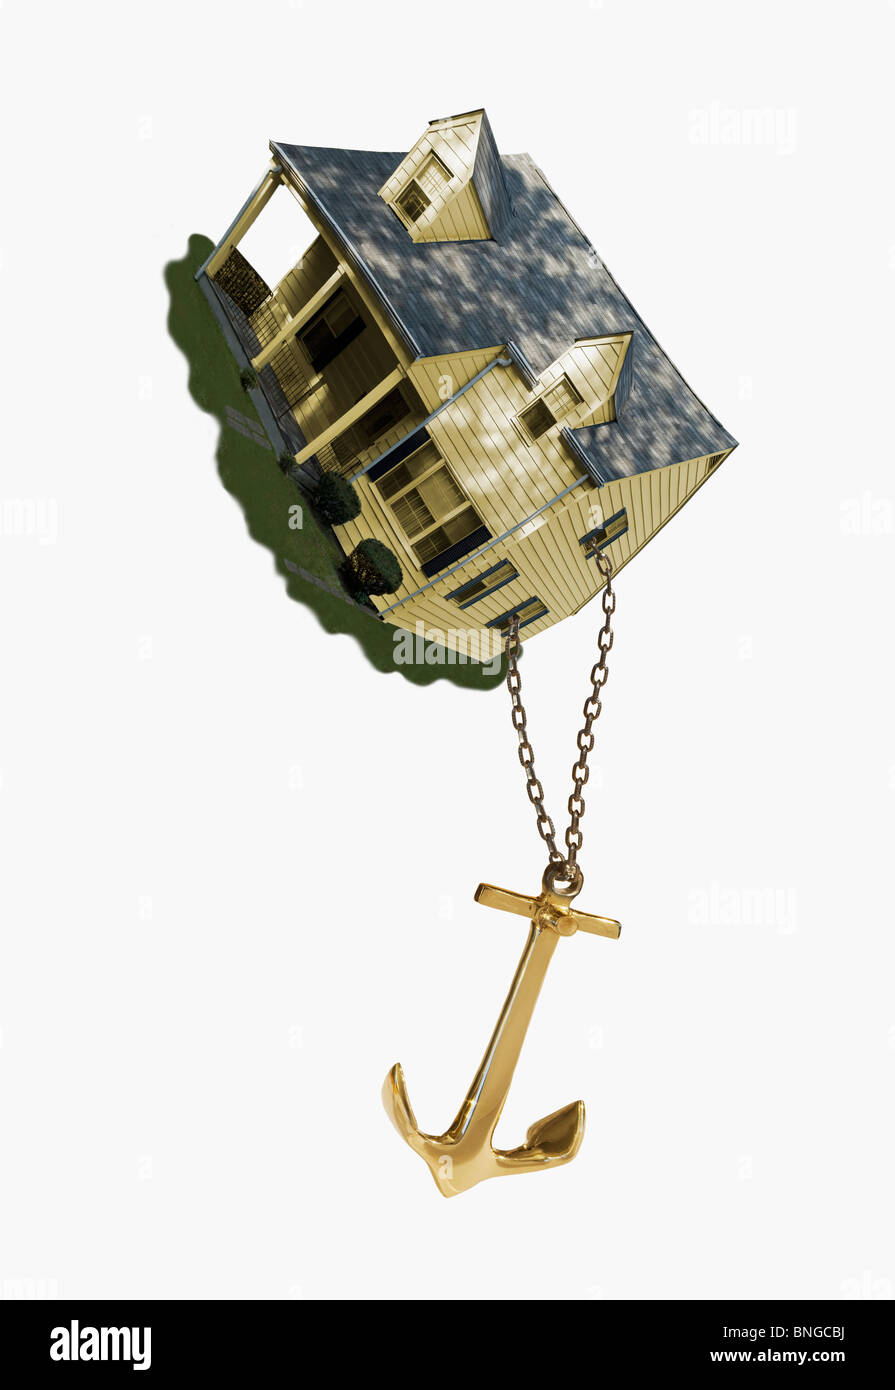 anchor chained to house - Stock Image